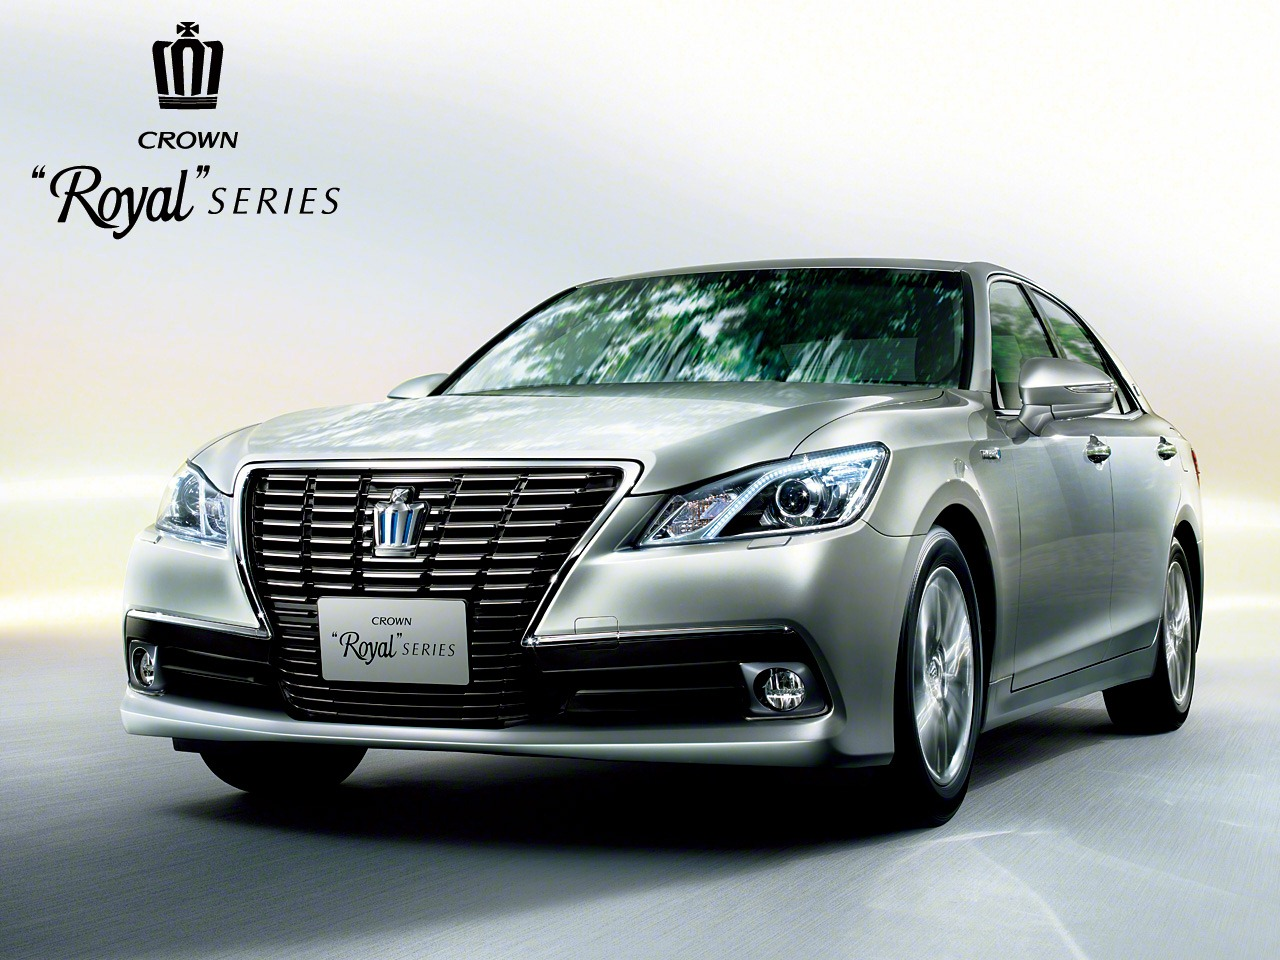 2013 Toyota Crown Royal and Athlete Revealed [Photo Gallery]